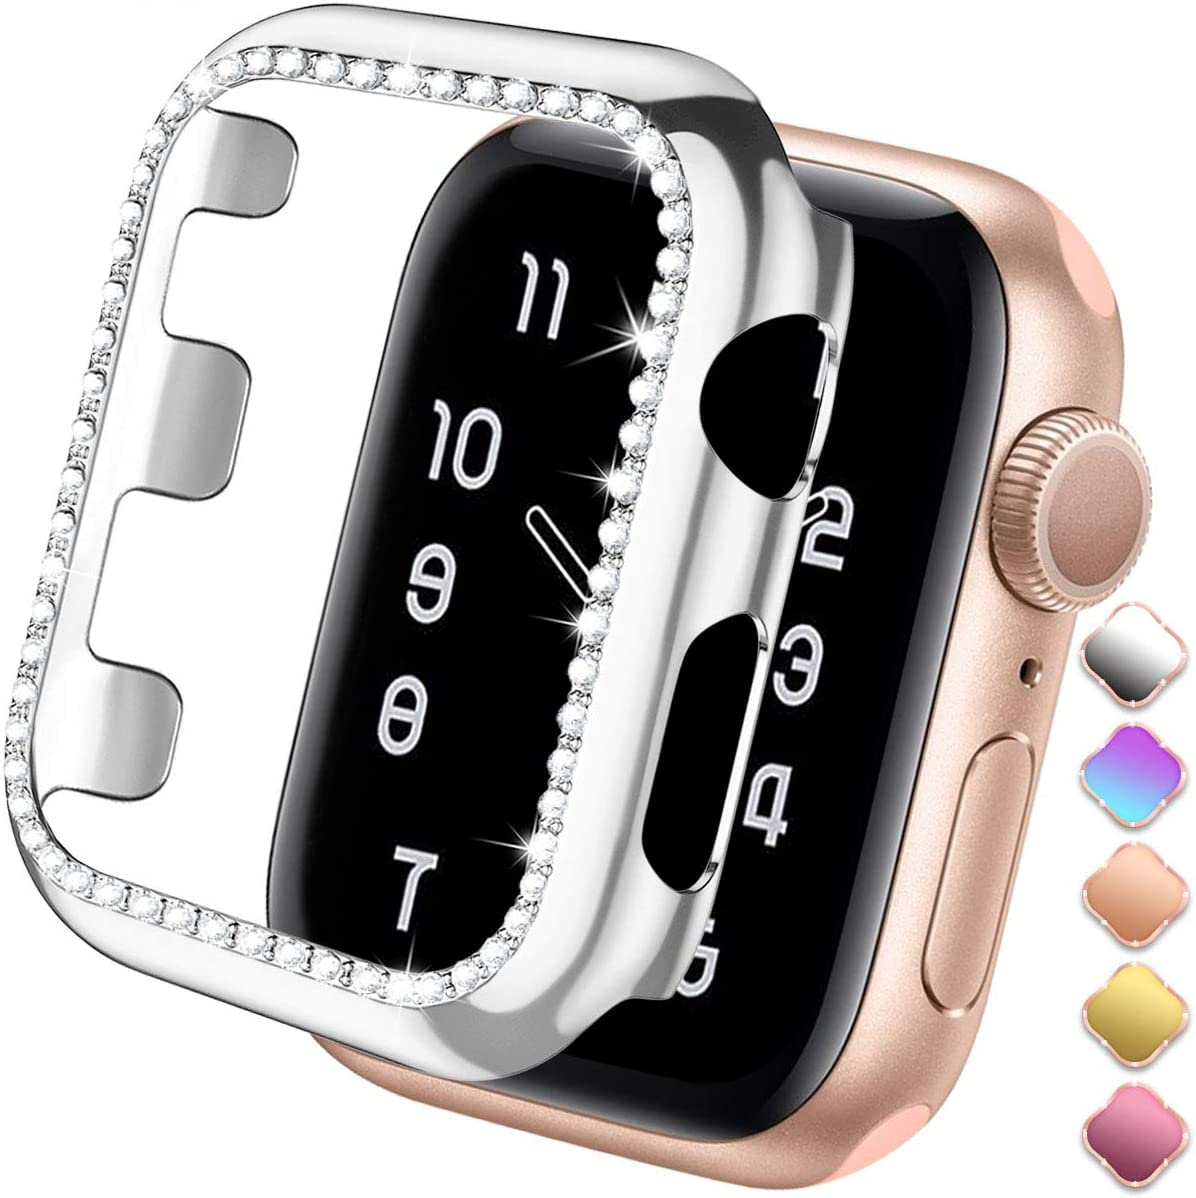 ZAROTO Screen Protector for Apple Watch SE Case 38mm, Bling Bumper for Apple Watch 38mm Series 3 2/1 Cover Protective Case Glitter Diamond Plate Frame Sparkle Rhinestone Women Girl 38mm Silver